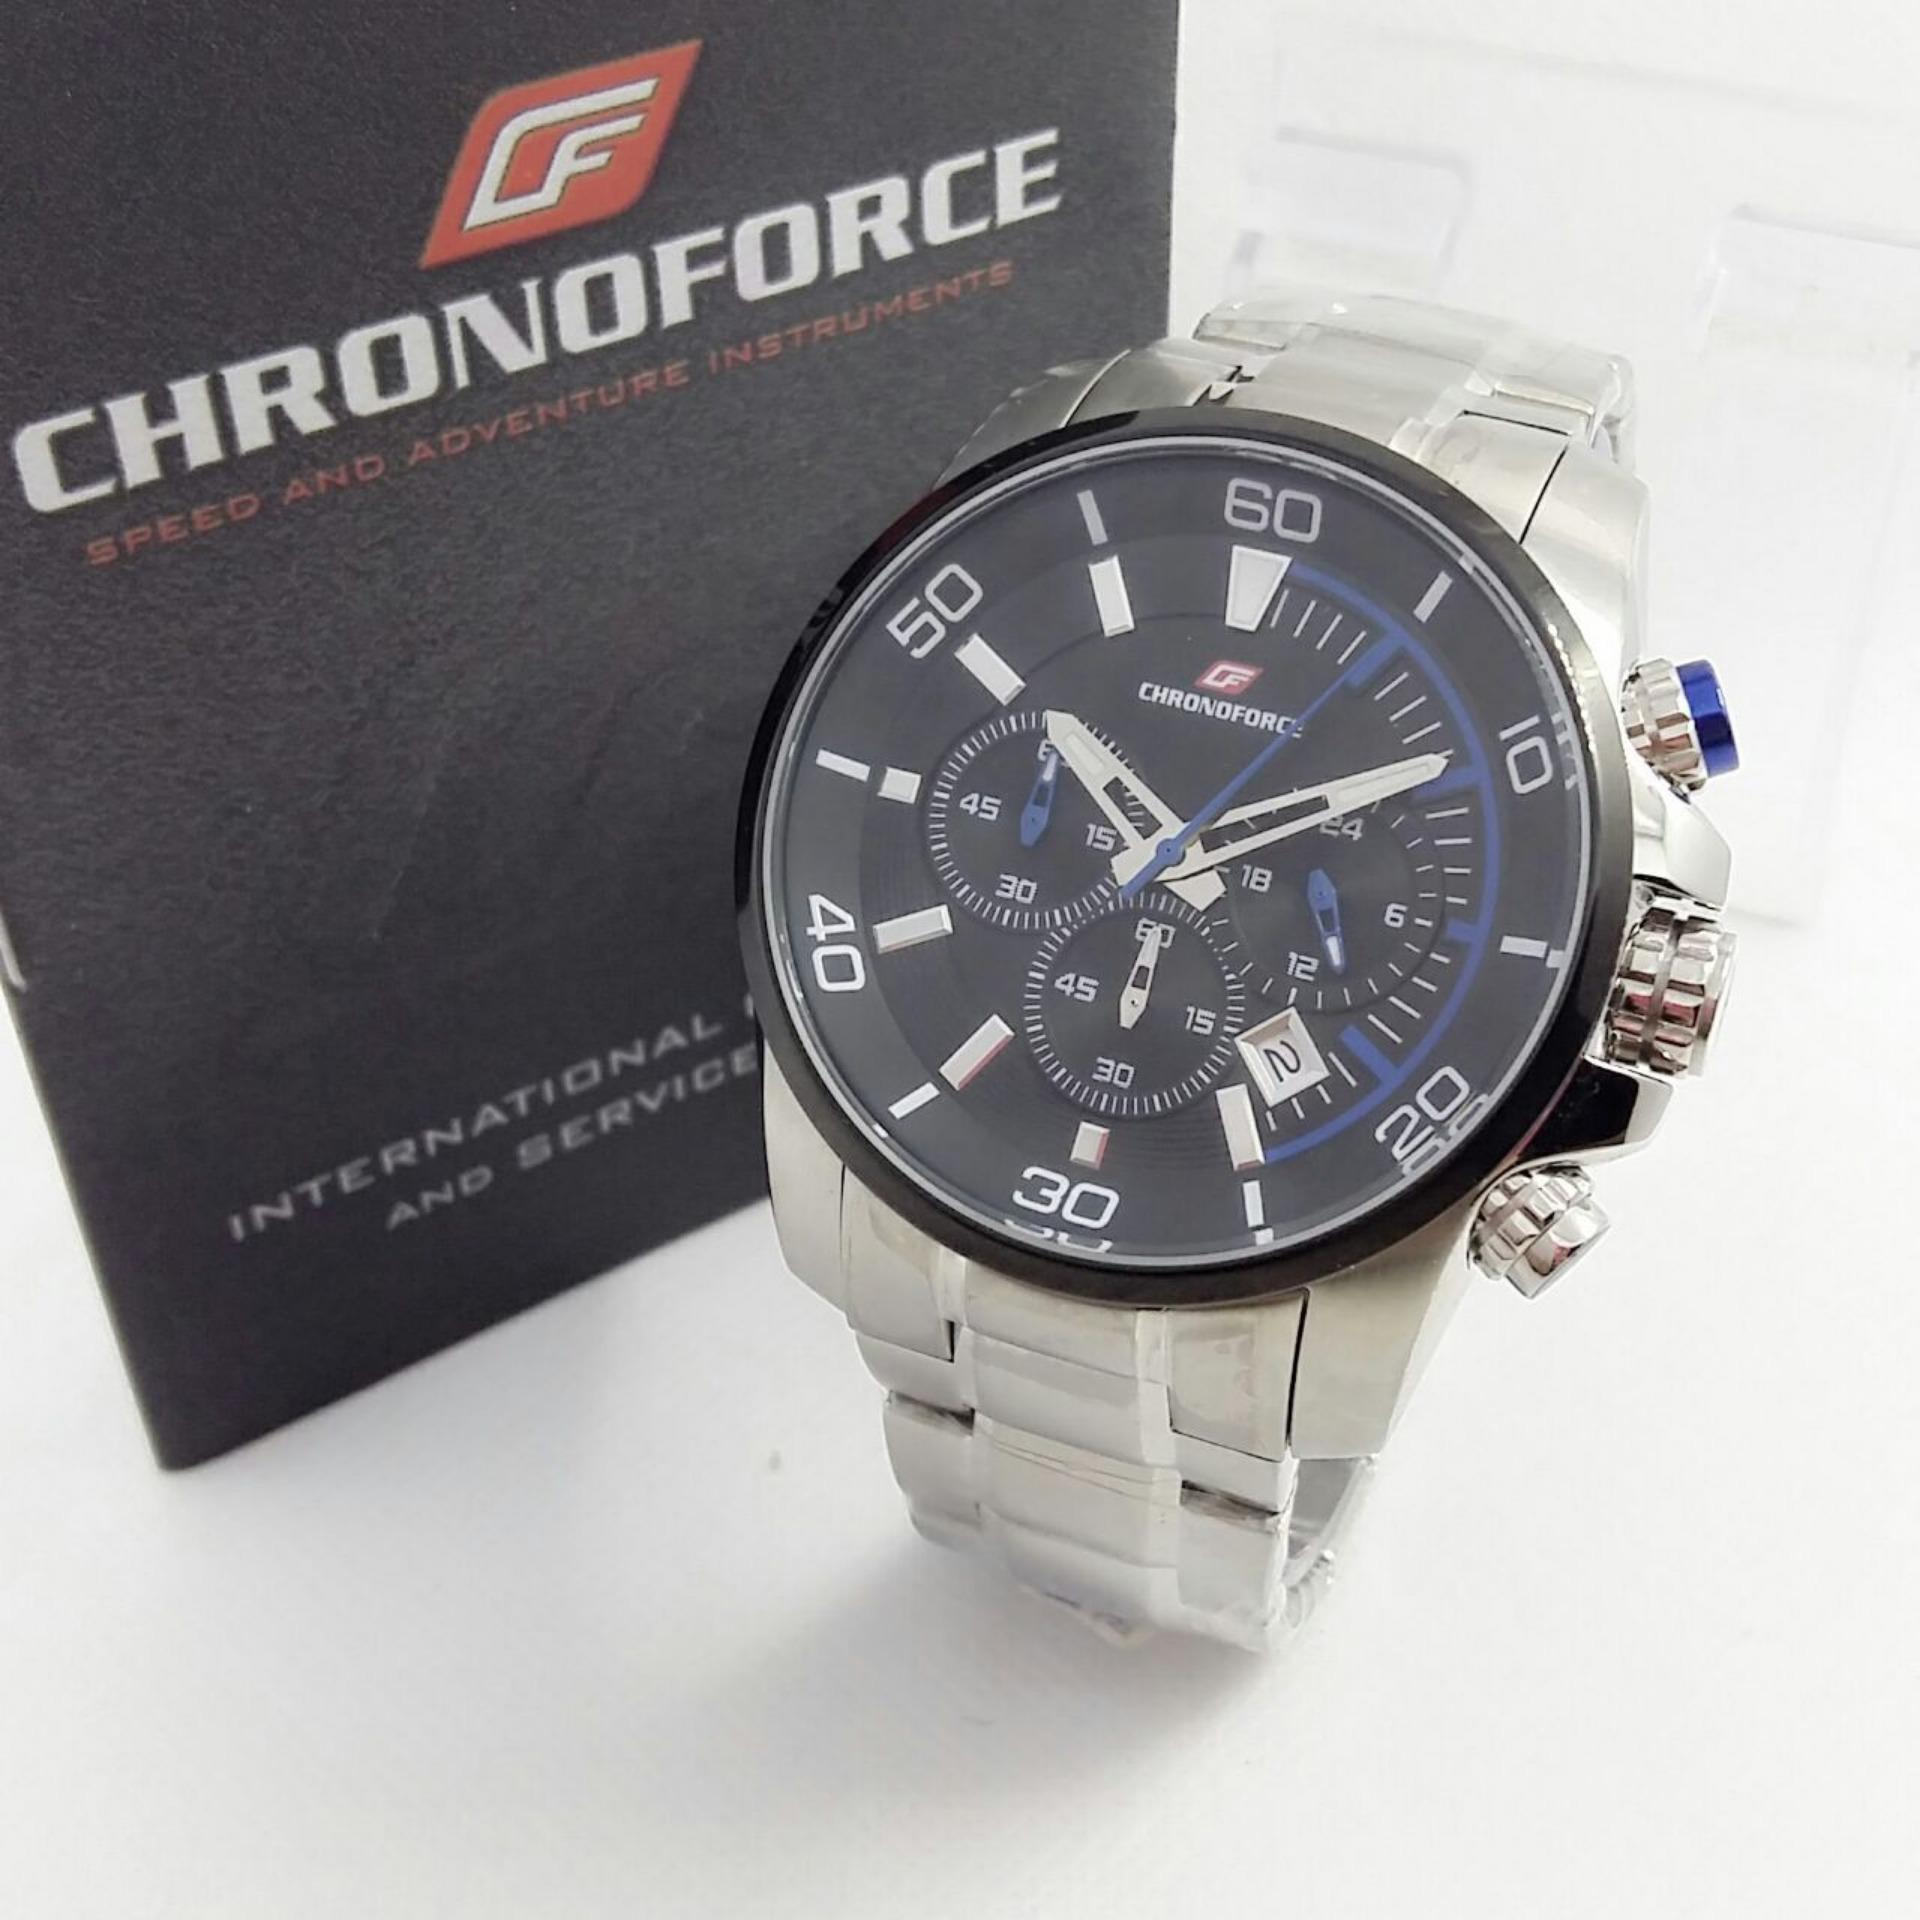 CHRONOFORCE CR5227GZ - Jam Tangan Fashion Pria - Full Stainless - Chronograph Mode